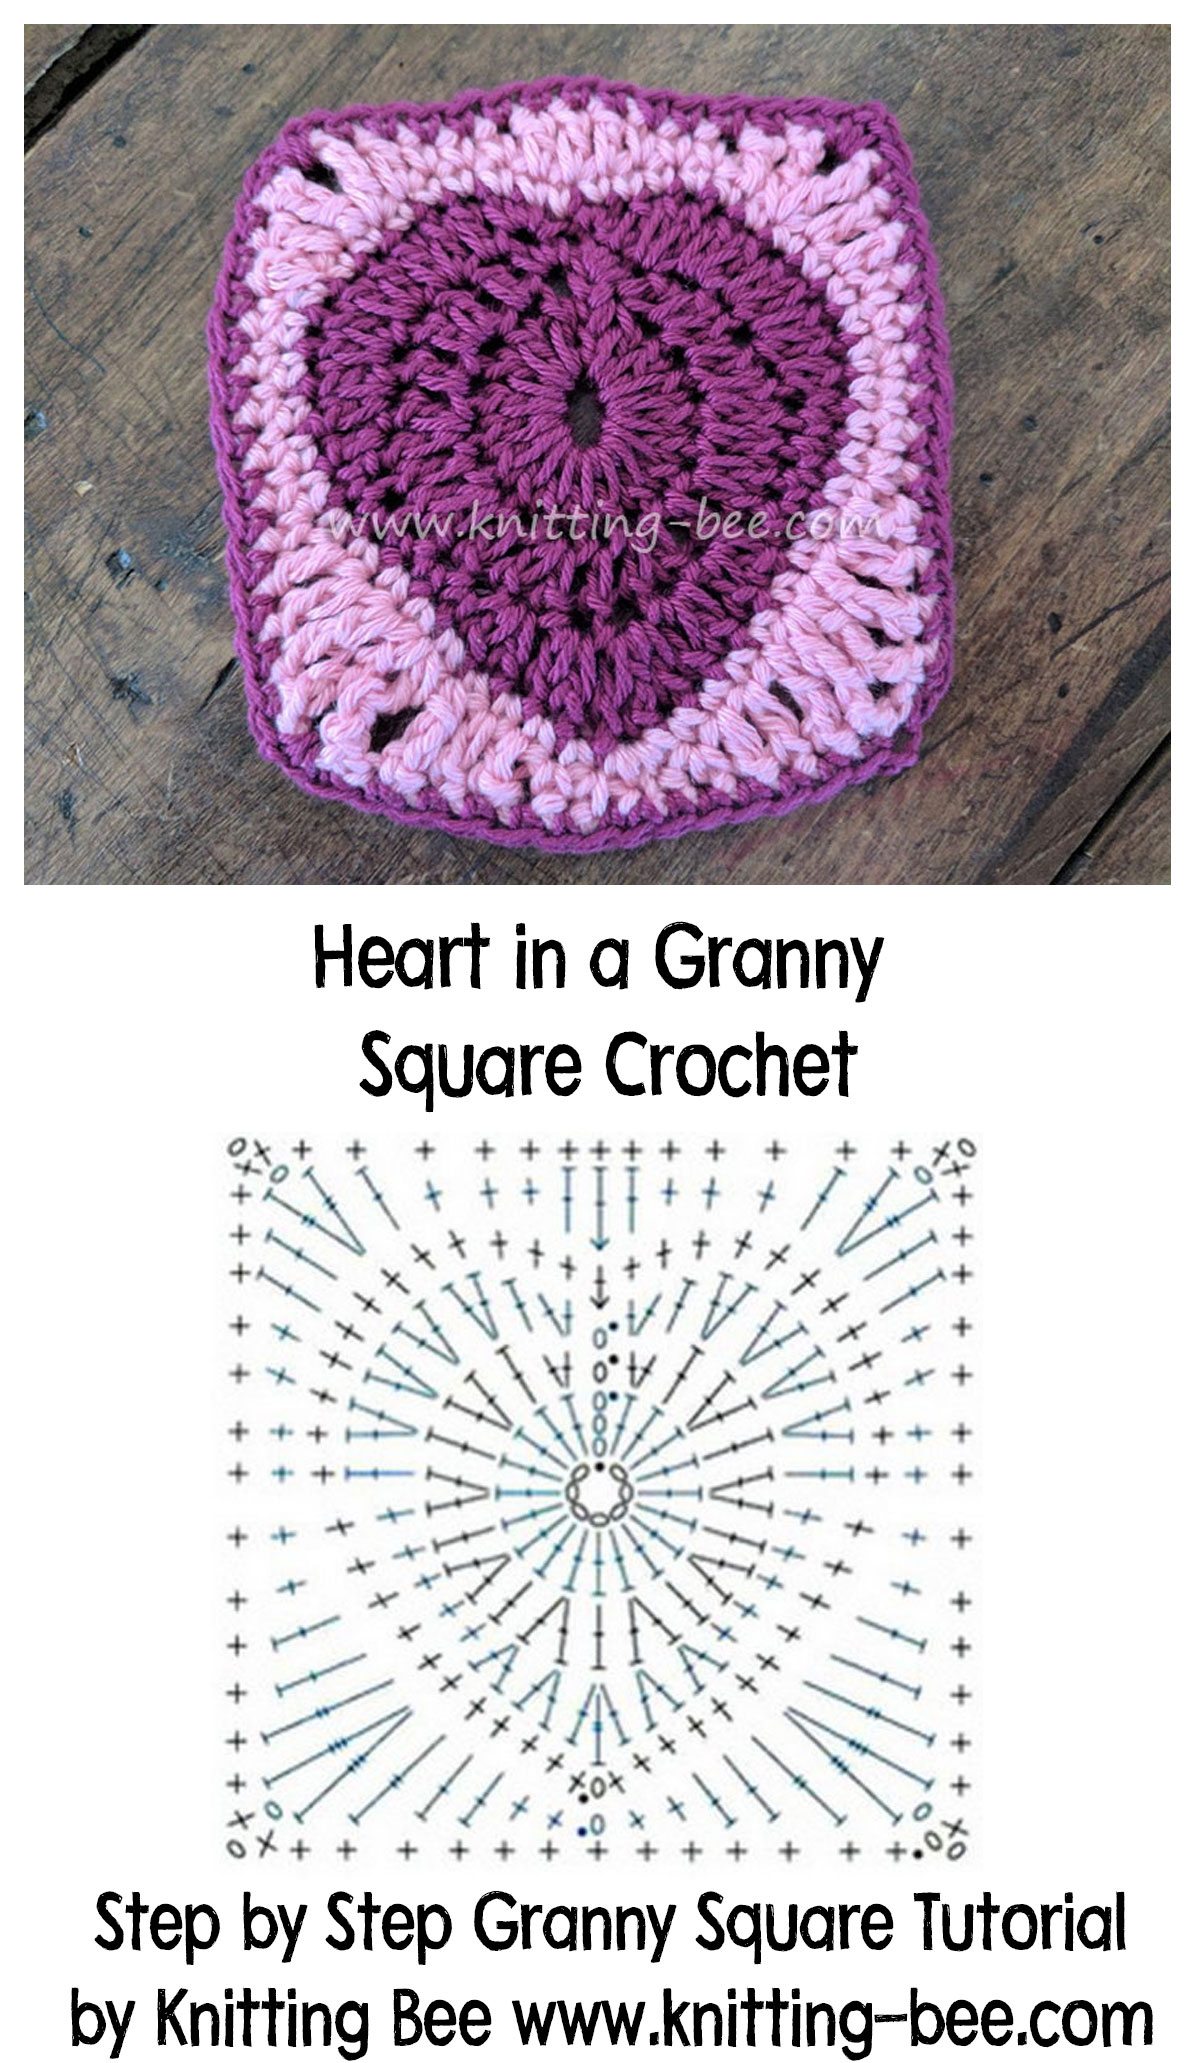 Knitted Squares Patterns Free Crochet Squares Knitting Bee 46 Free Knitting Patterns